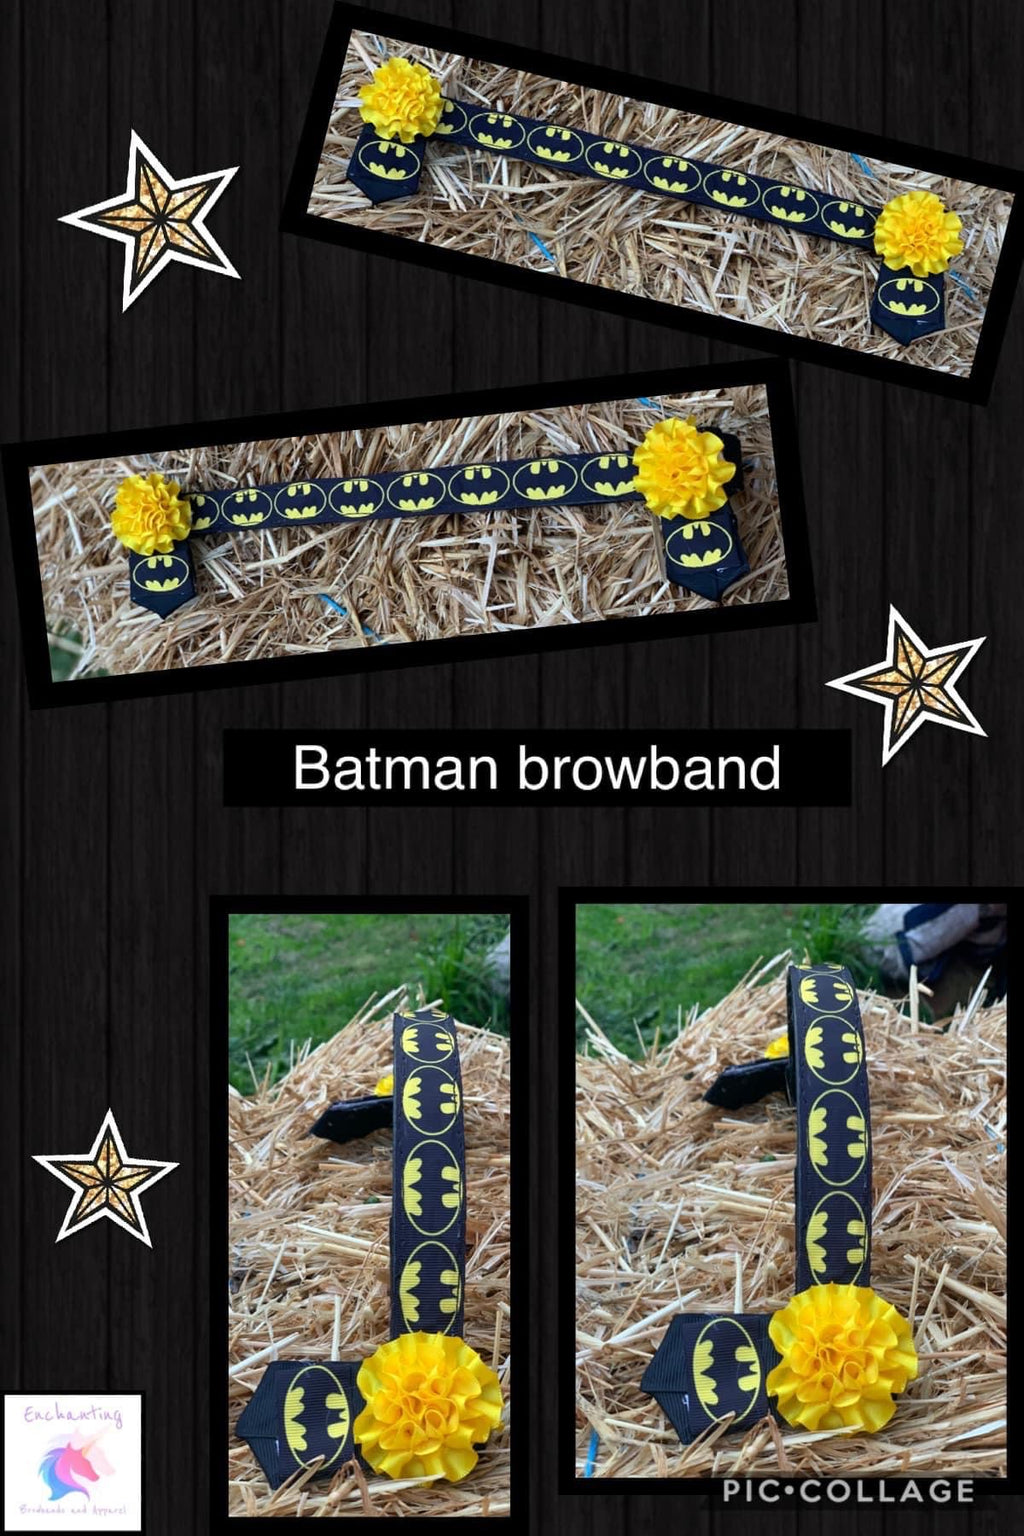 Batman browband